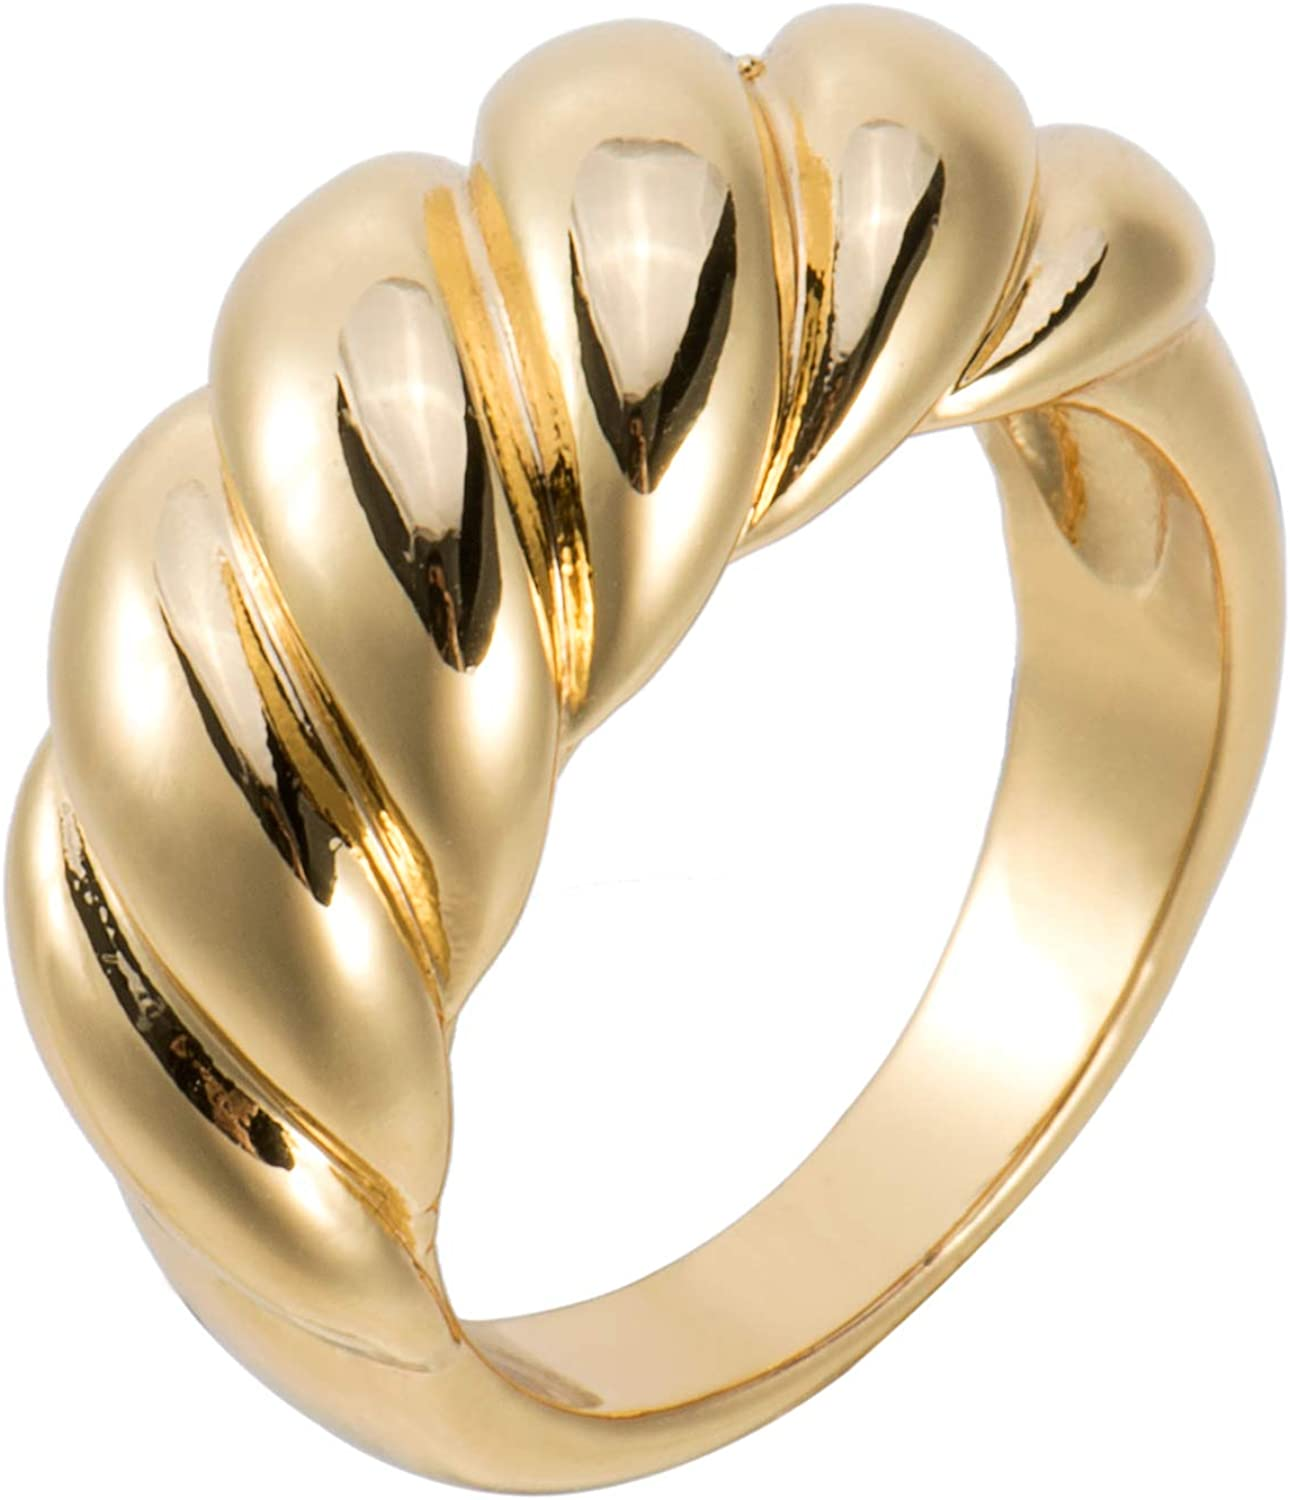 18k Gold Plated Chunky Dome Ring Croissant Braided Ring Signet Thick Band for Women Size 5 to 10